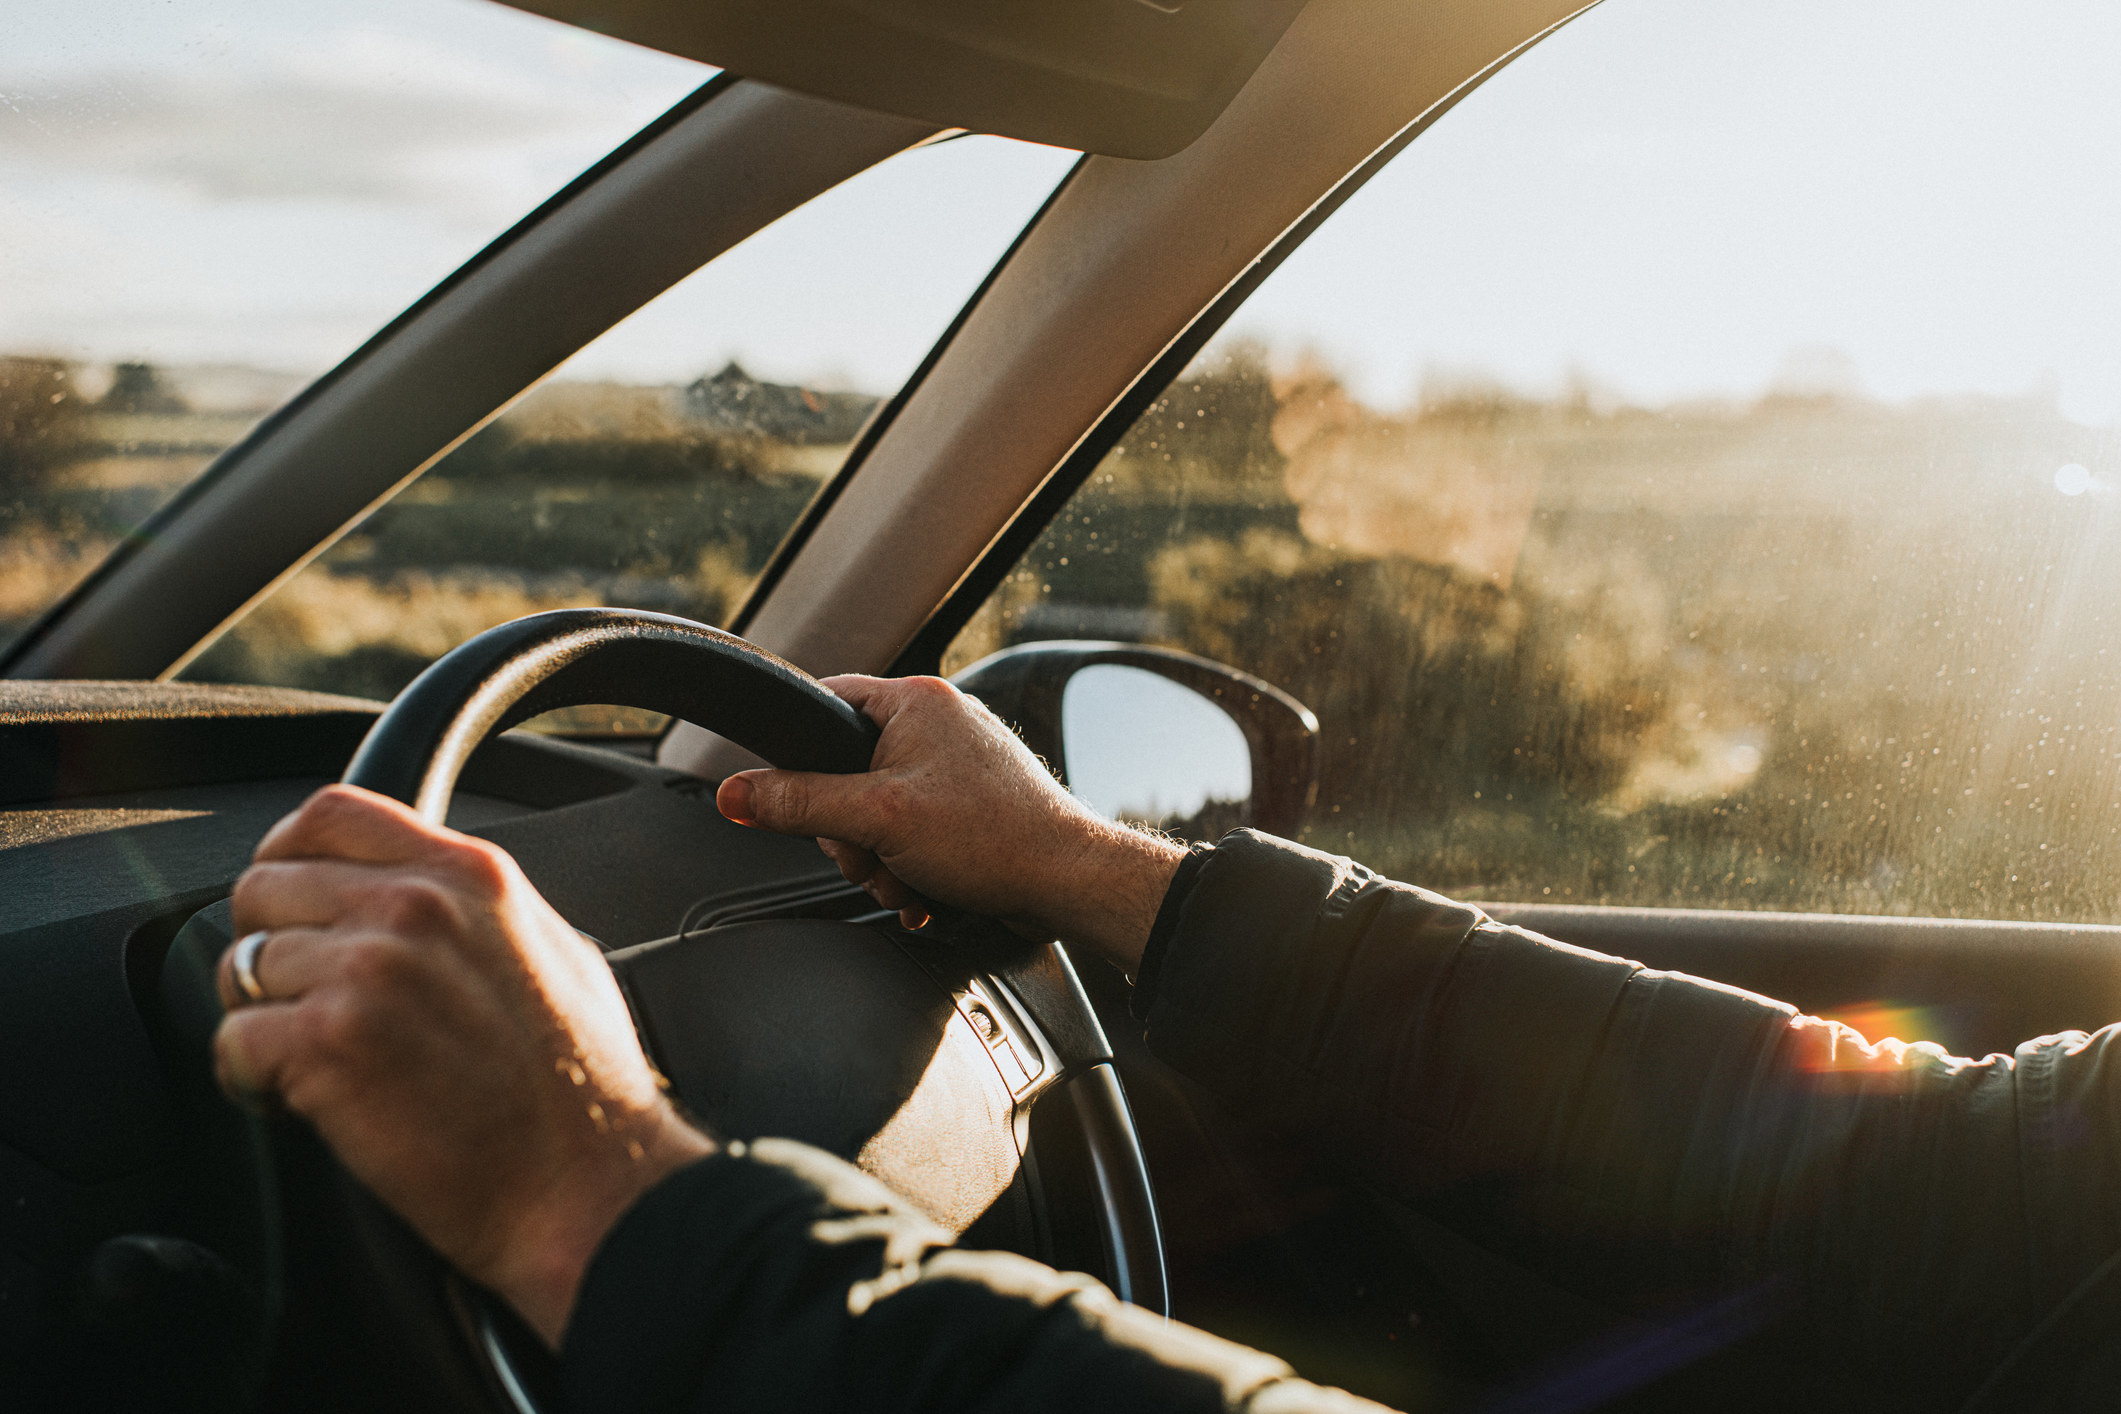 An up-close shot of a person holding a steering wheel driving a car.